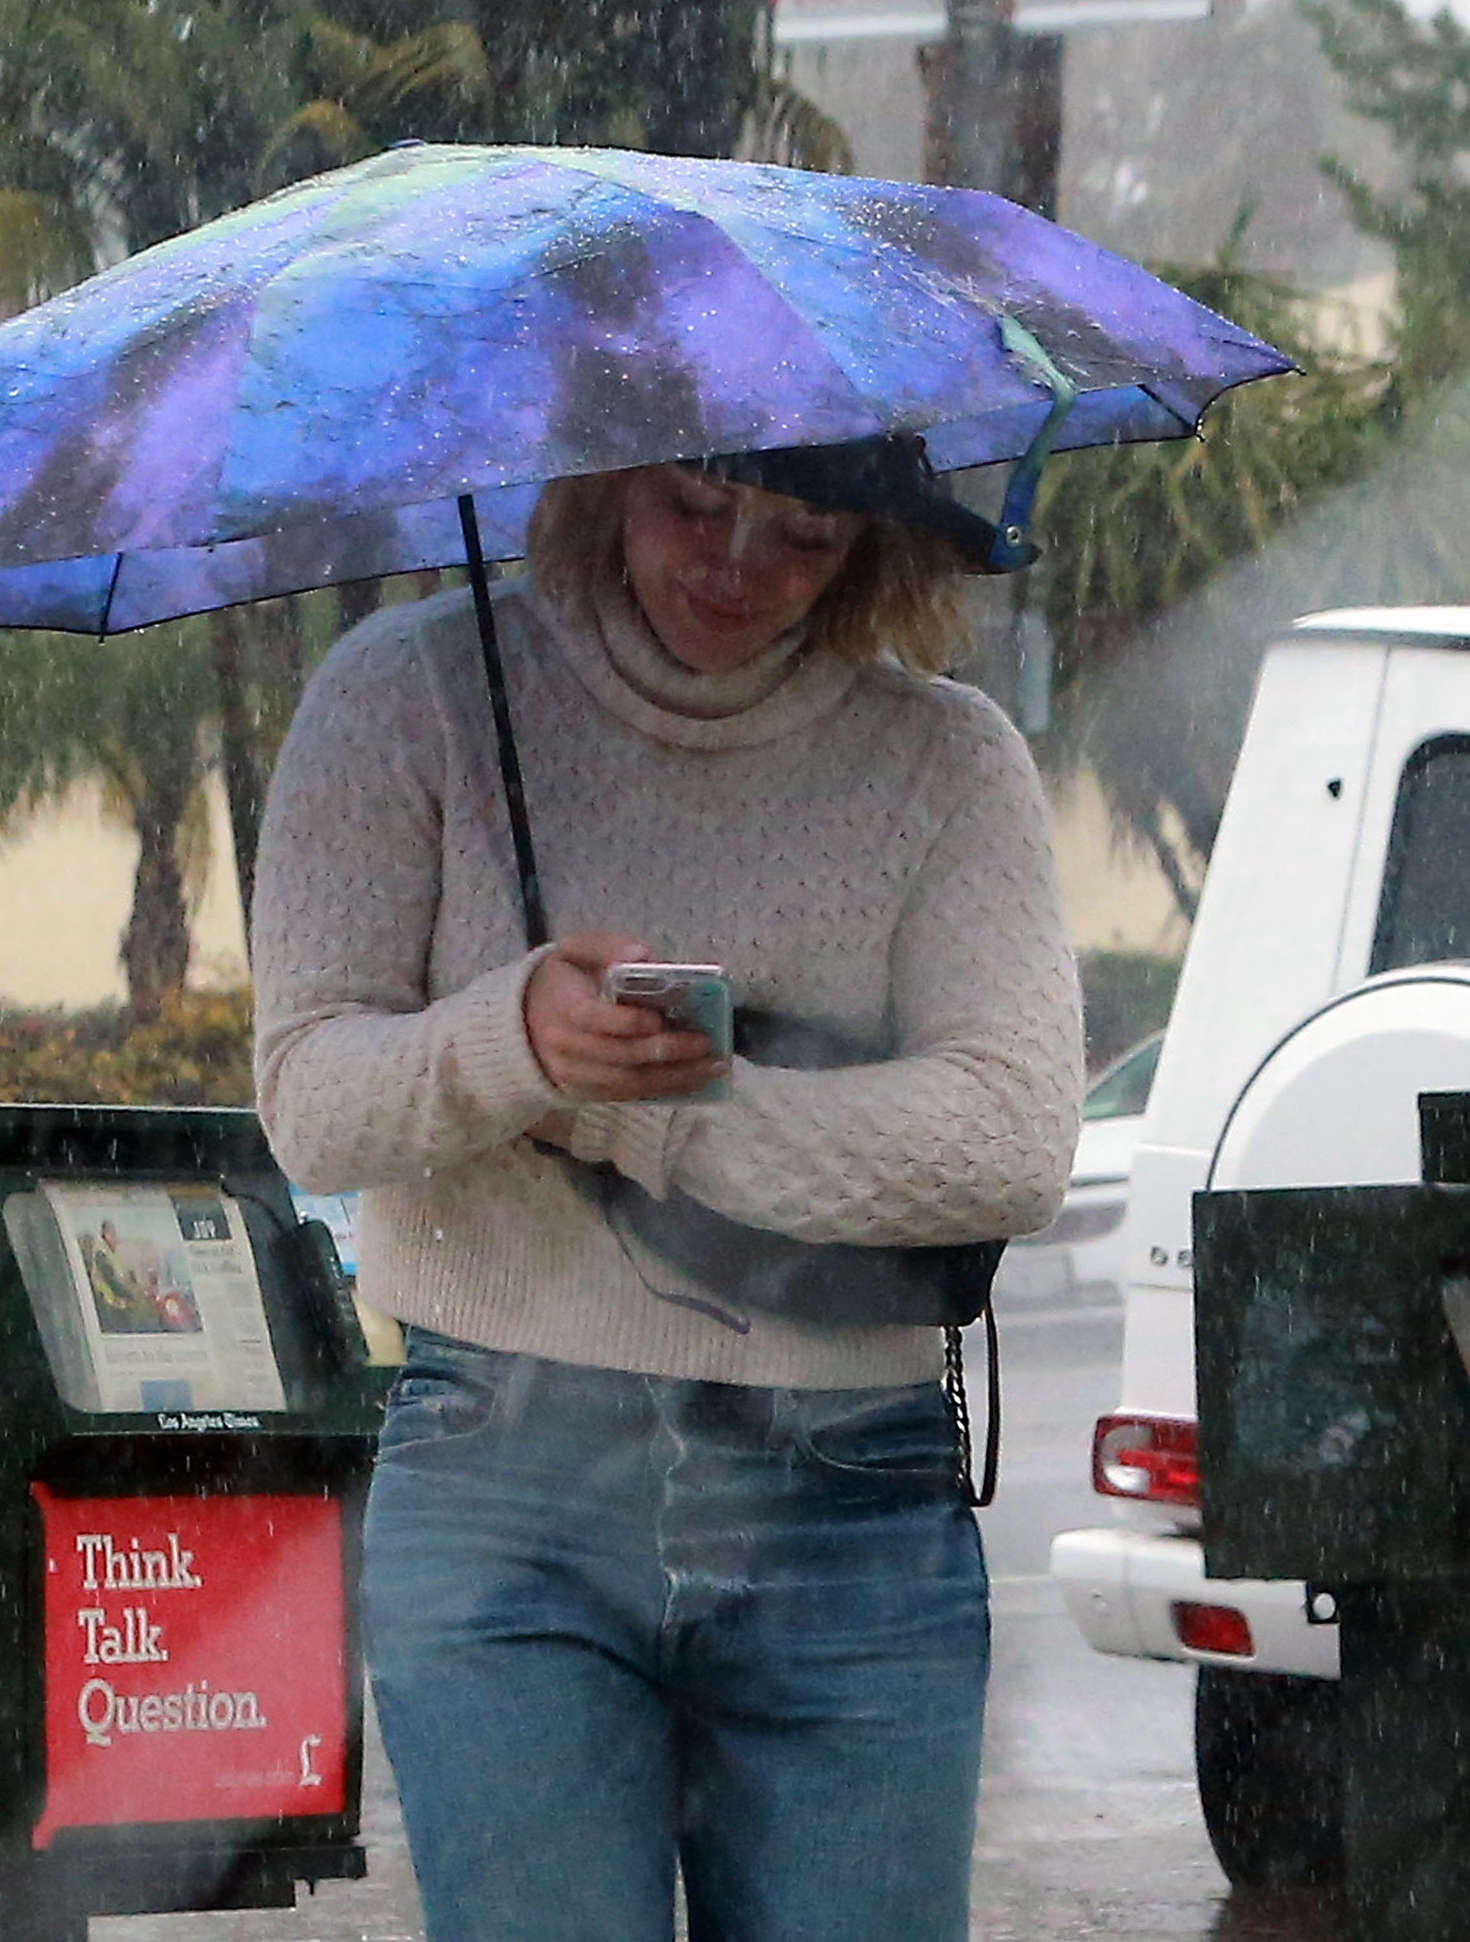 Hilary Duff 2016 : Hilary Duff in Jeans out on a rainy day -06